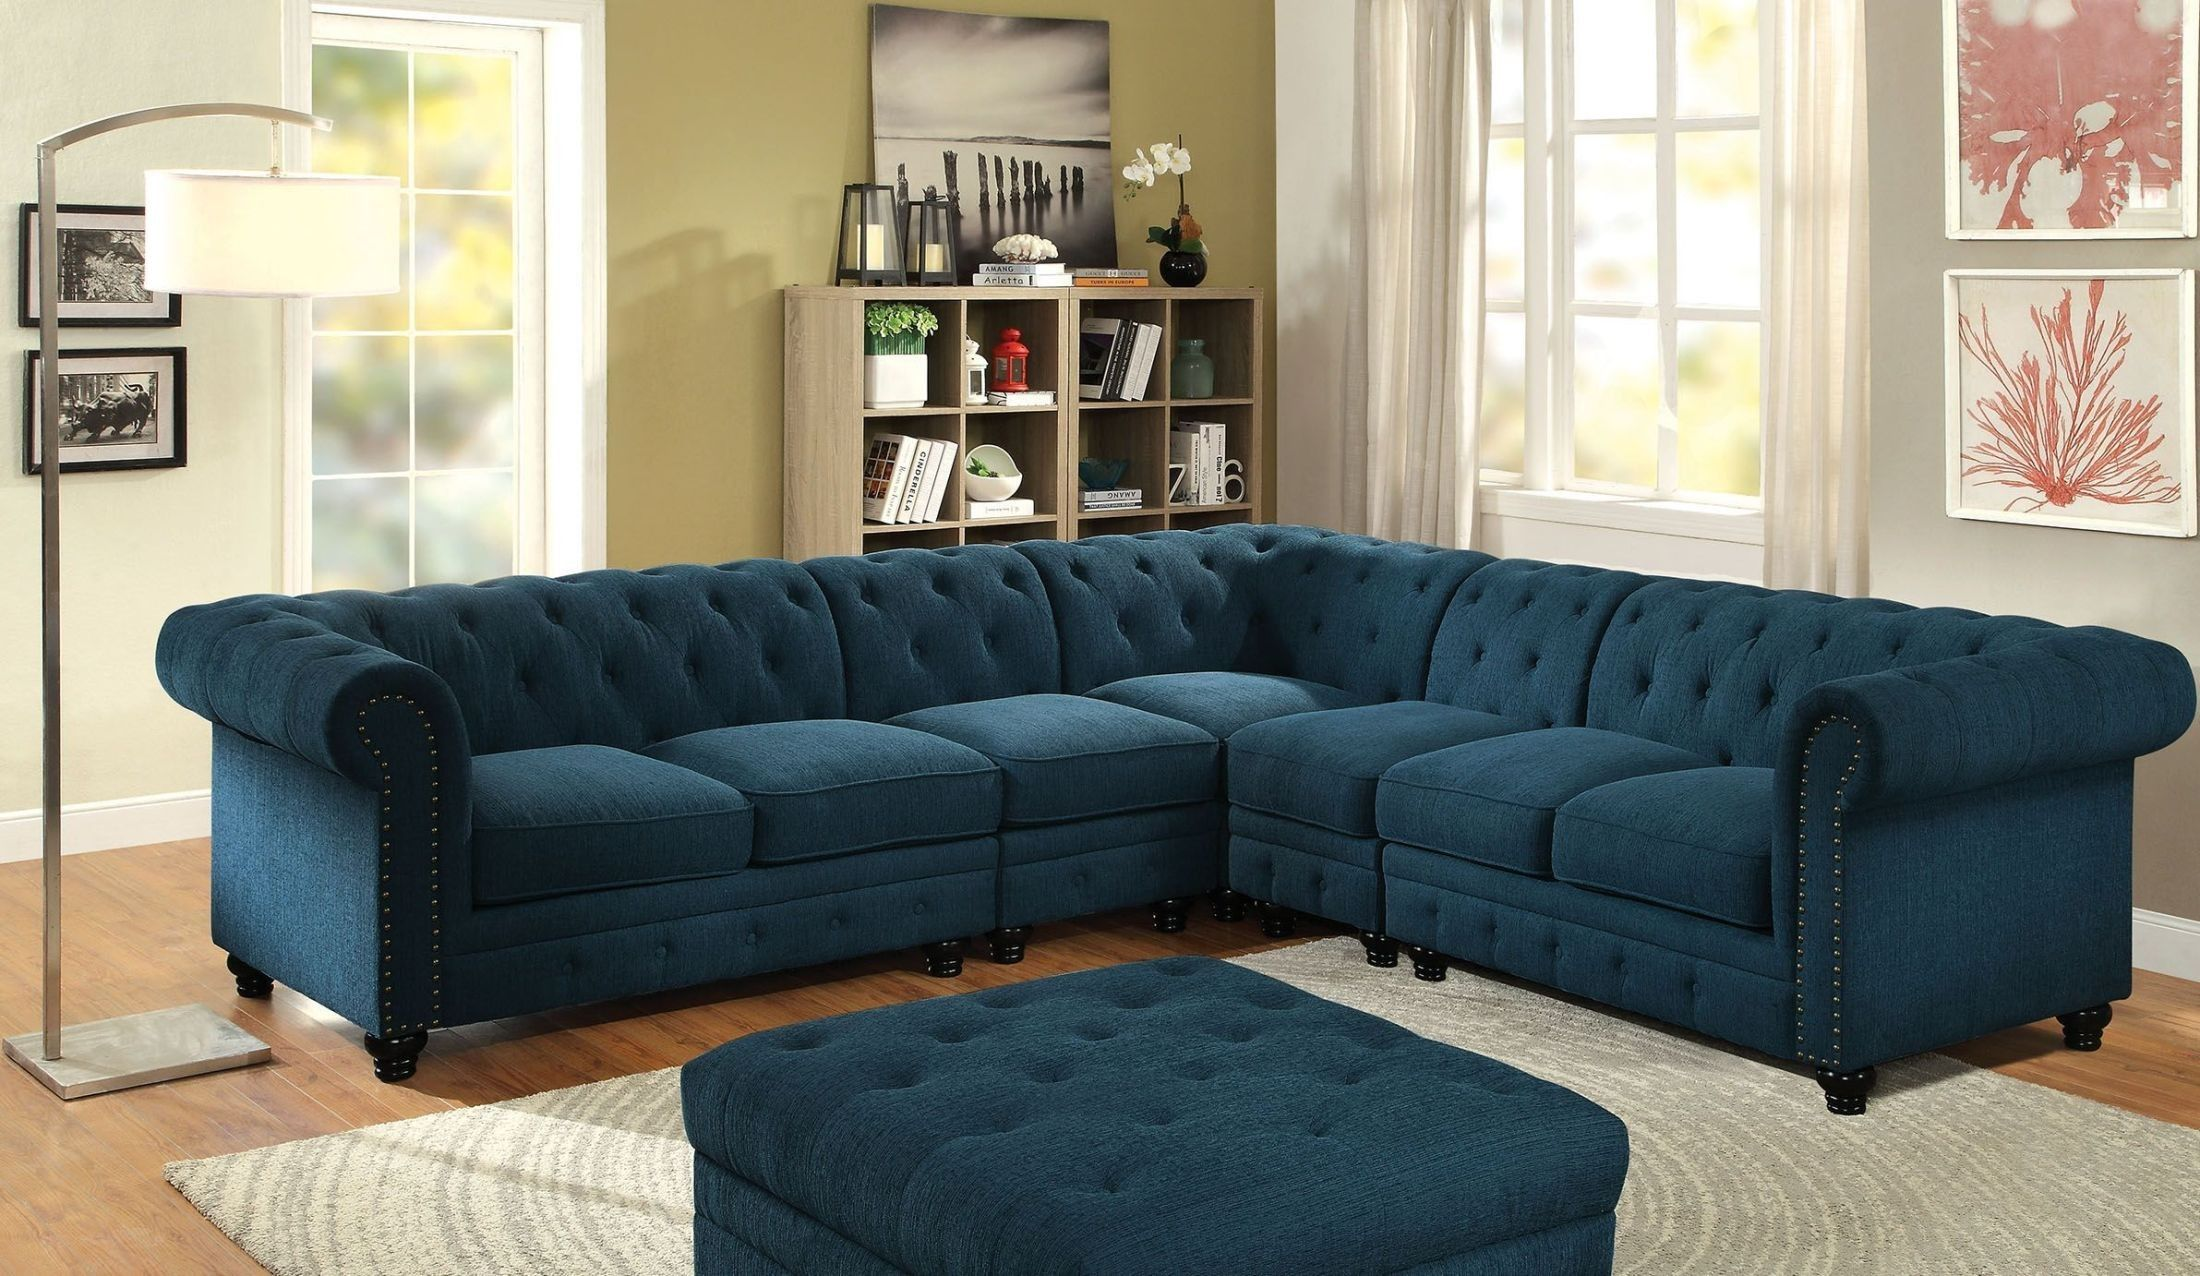 Stanford Ii Dark Teal Large Sectional Fabric Sectional Sofas Sectional Sofa Sofa Set